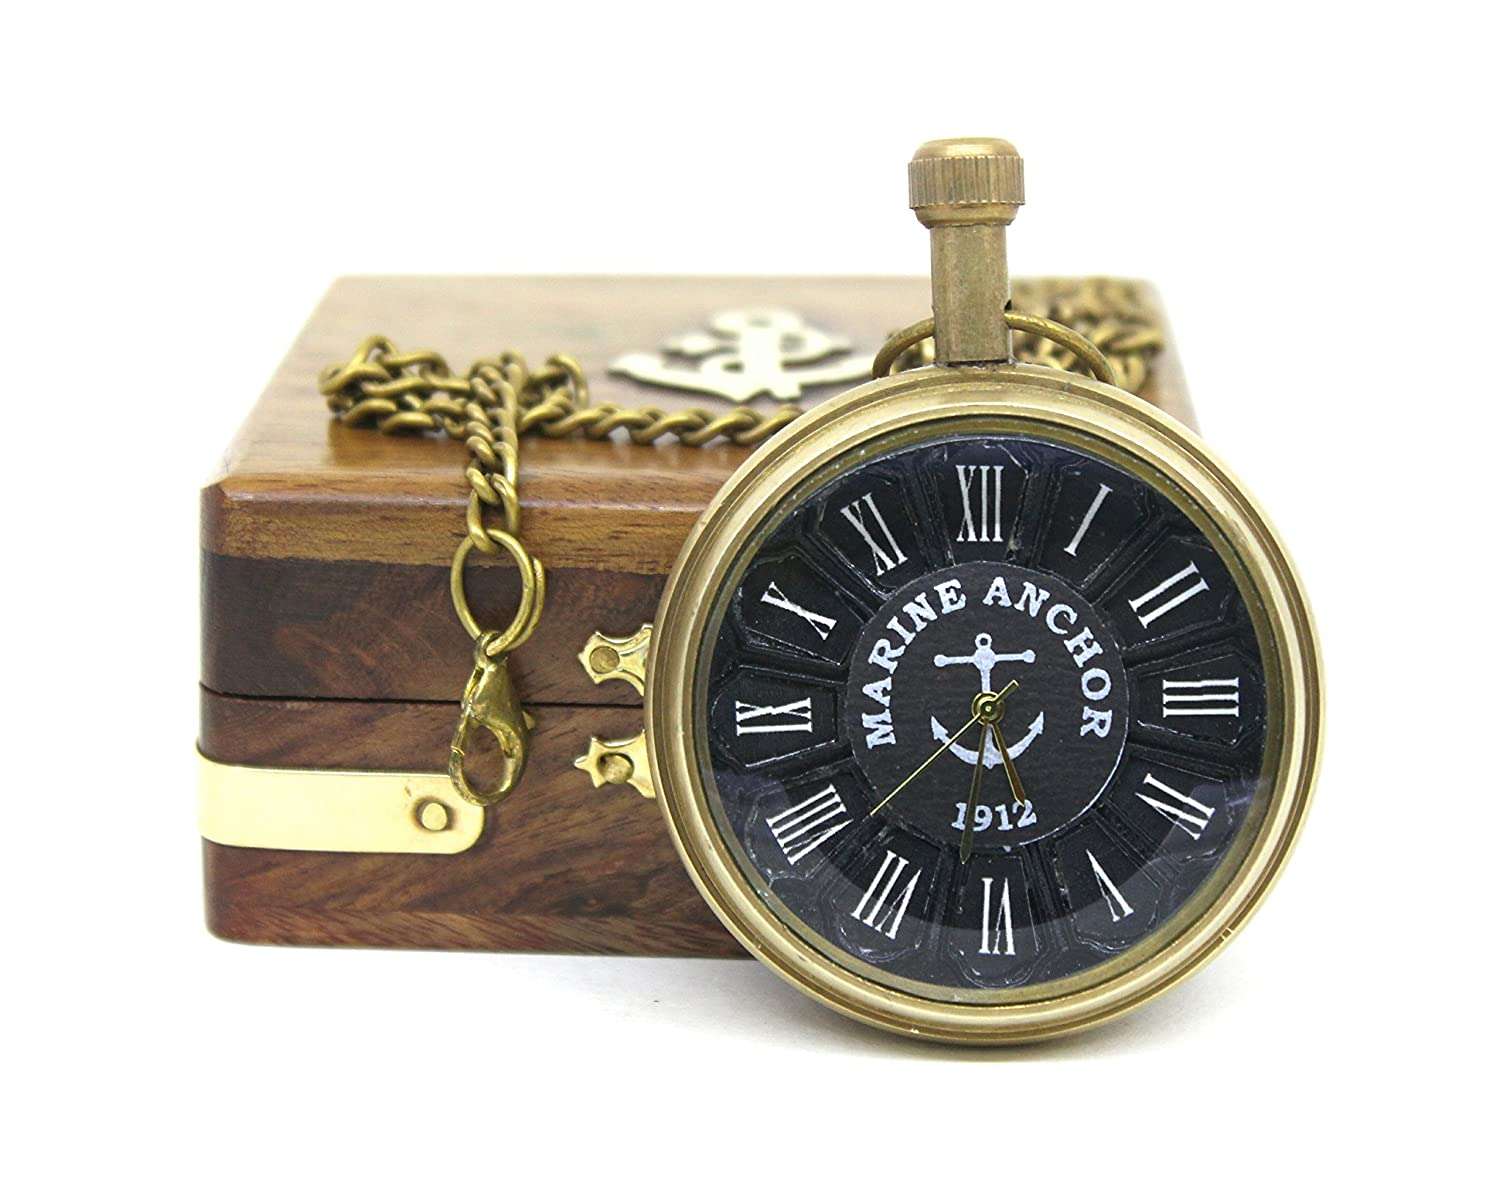 f0030c00f VA Antiques Type Chained Pocket Watch in Wooden Box with Special Black Dial  Size 4.5 cm (Diameter): Amazon.in: Watches